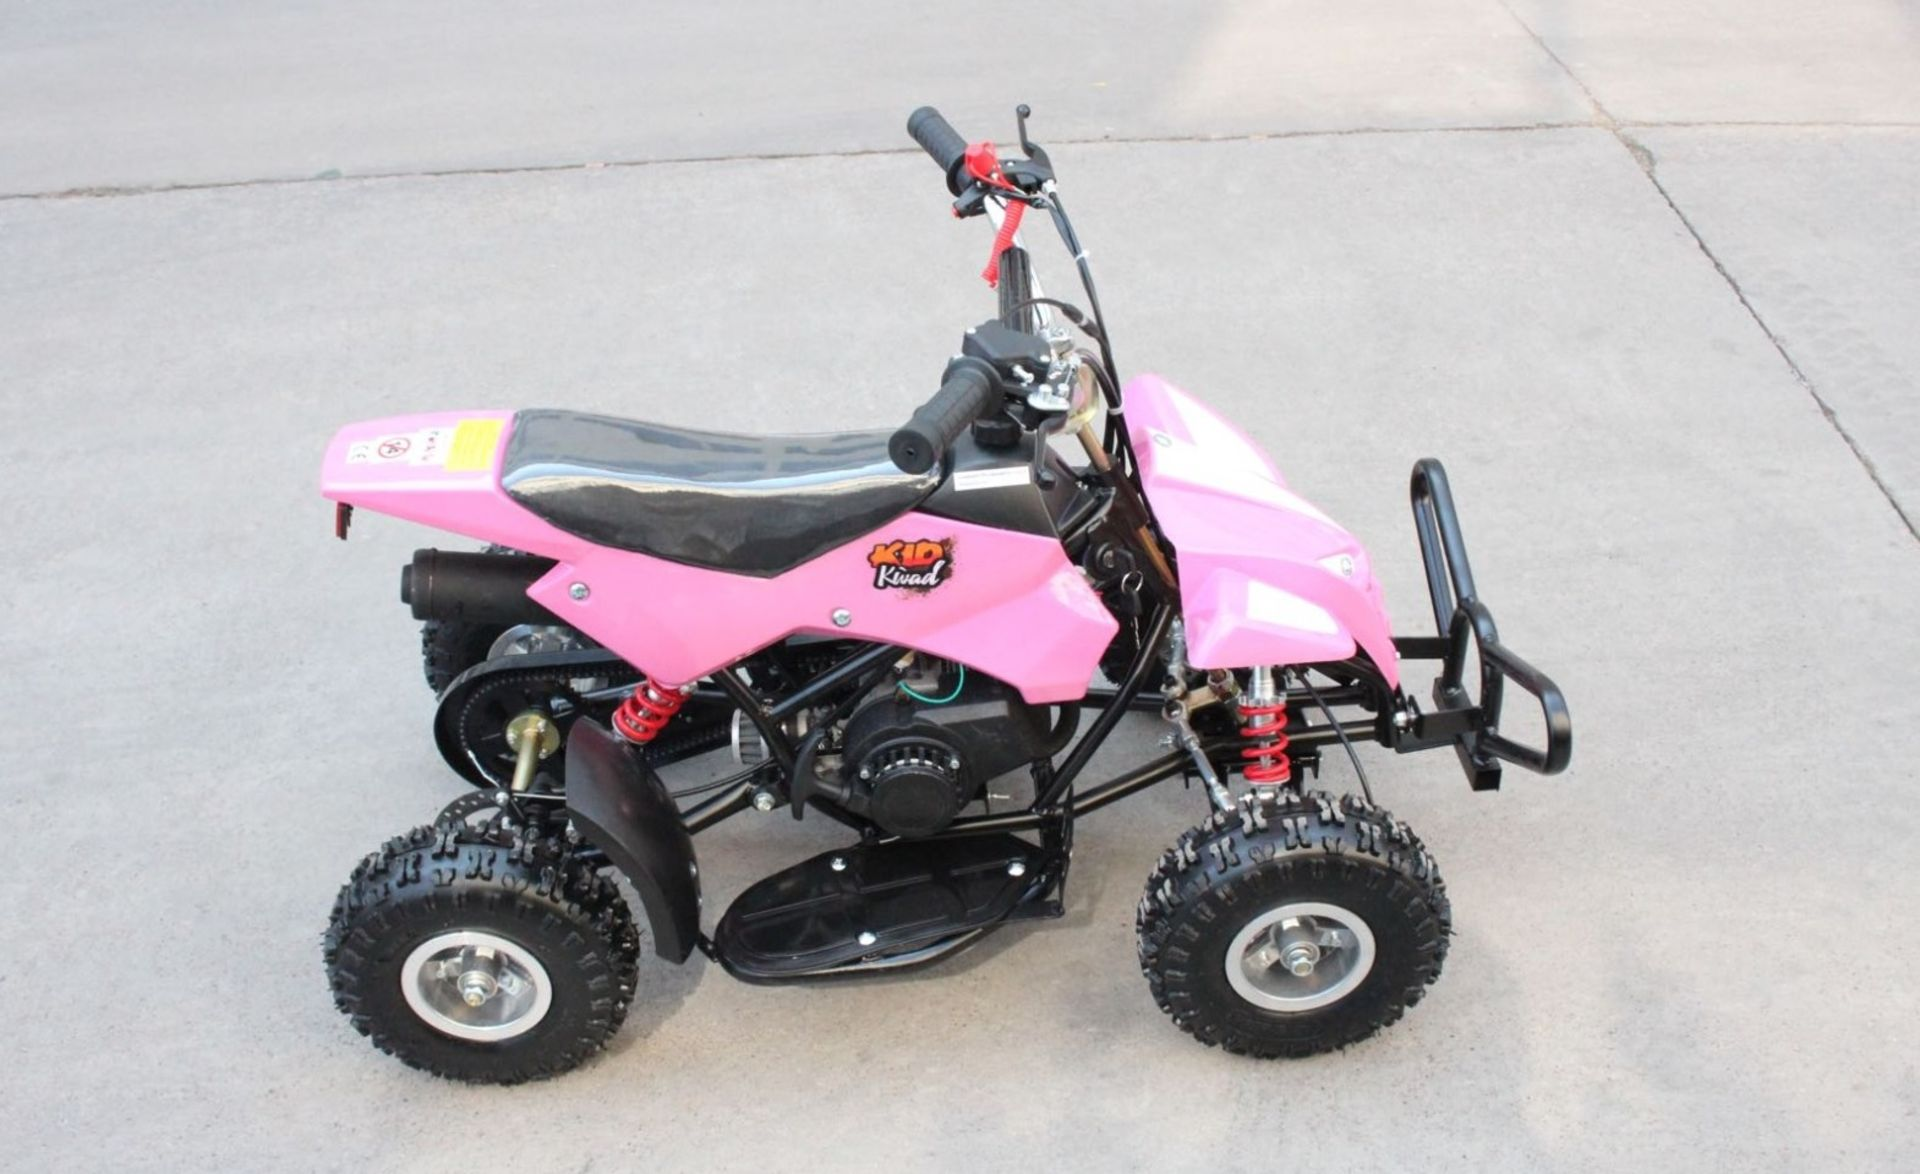 + VAT Brand New 50cc Mini Quad Bike FRM - Colours May Vary - Picture May Vary From Actual Item - Image 3 of 9